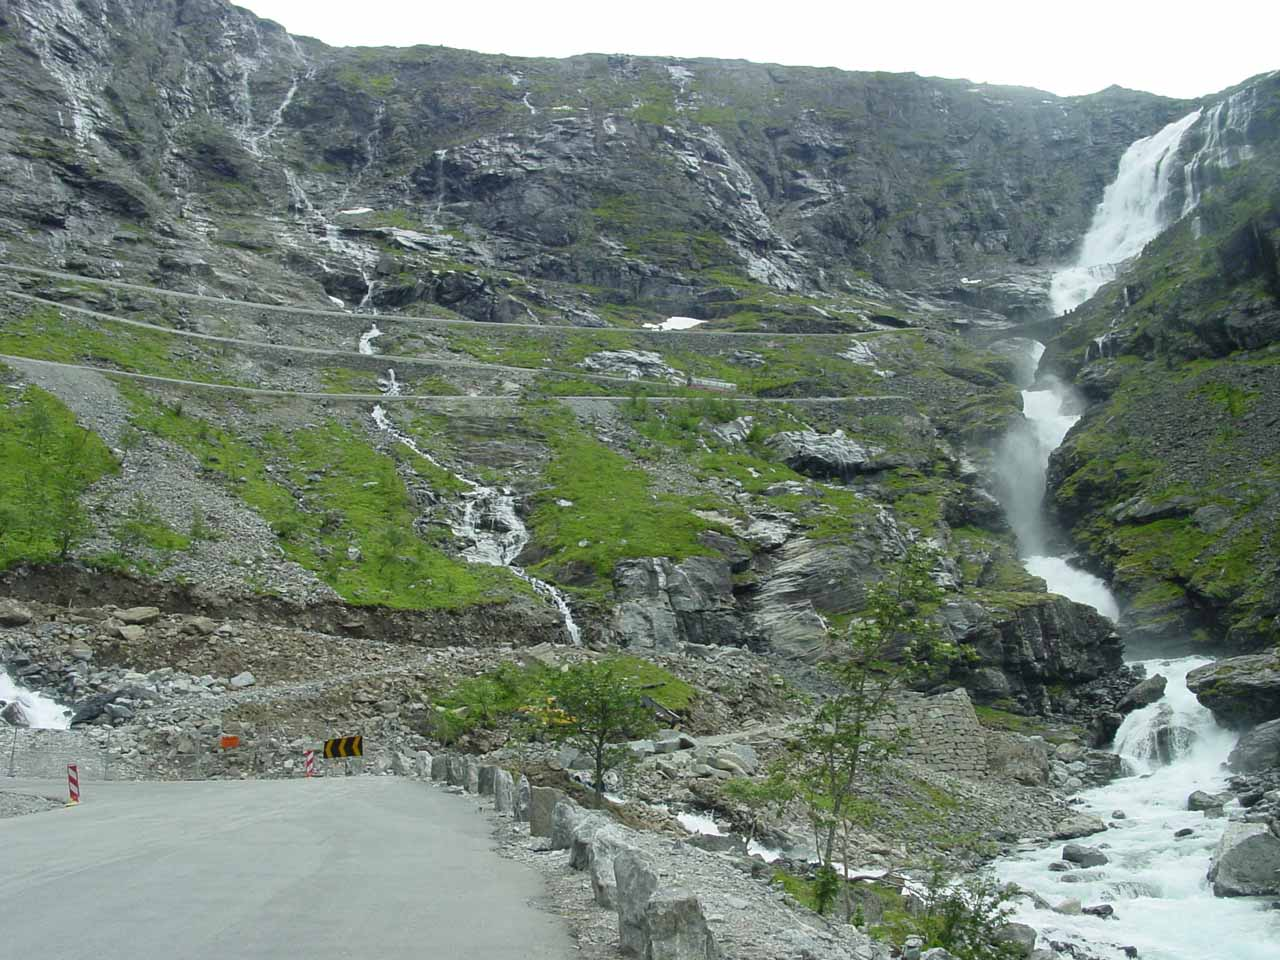 About to enter the first switchback of Trollstigen with this view of Stigfossen alongside the serpentine road